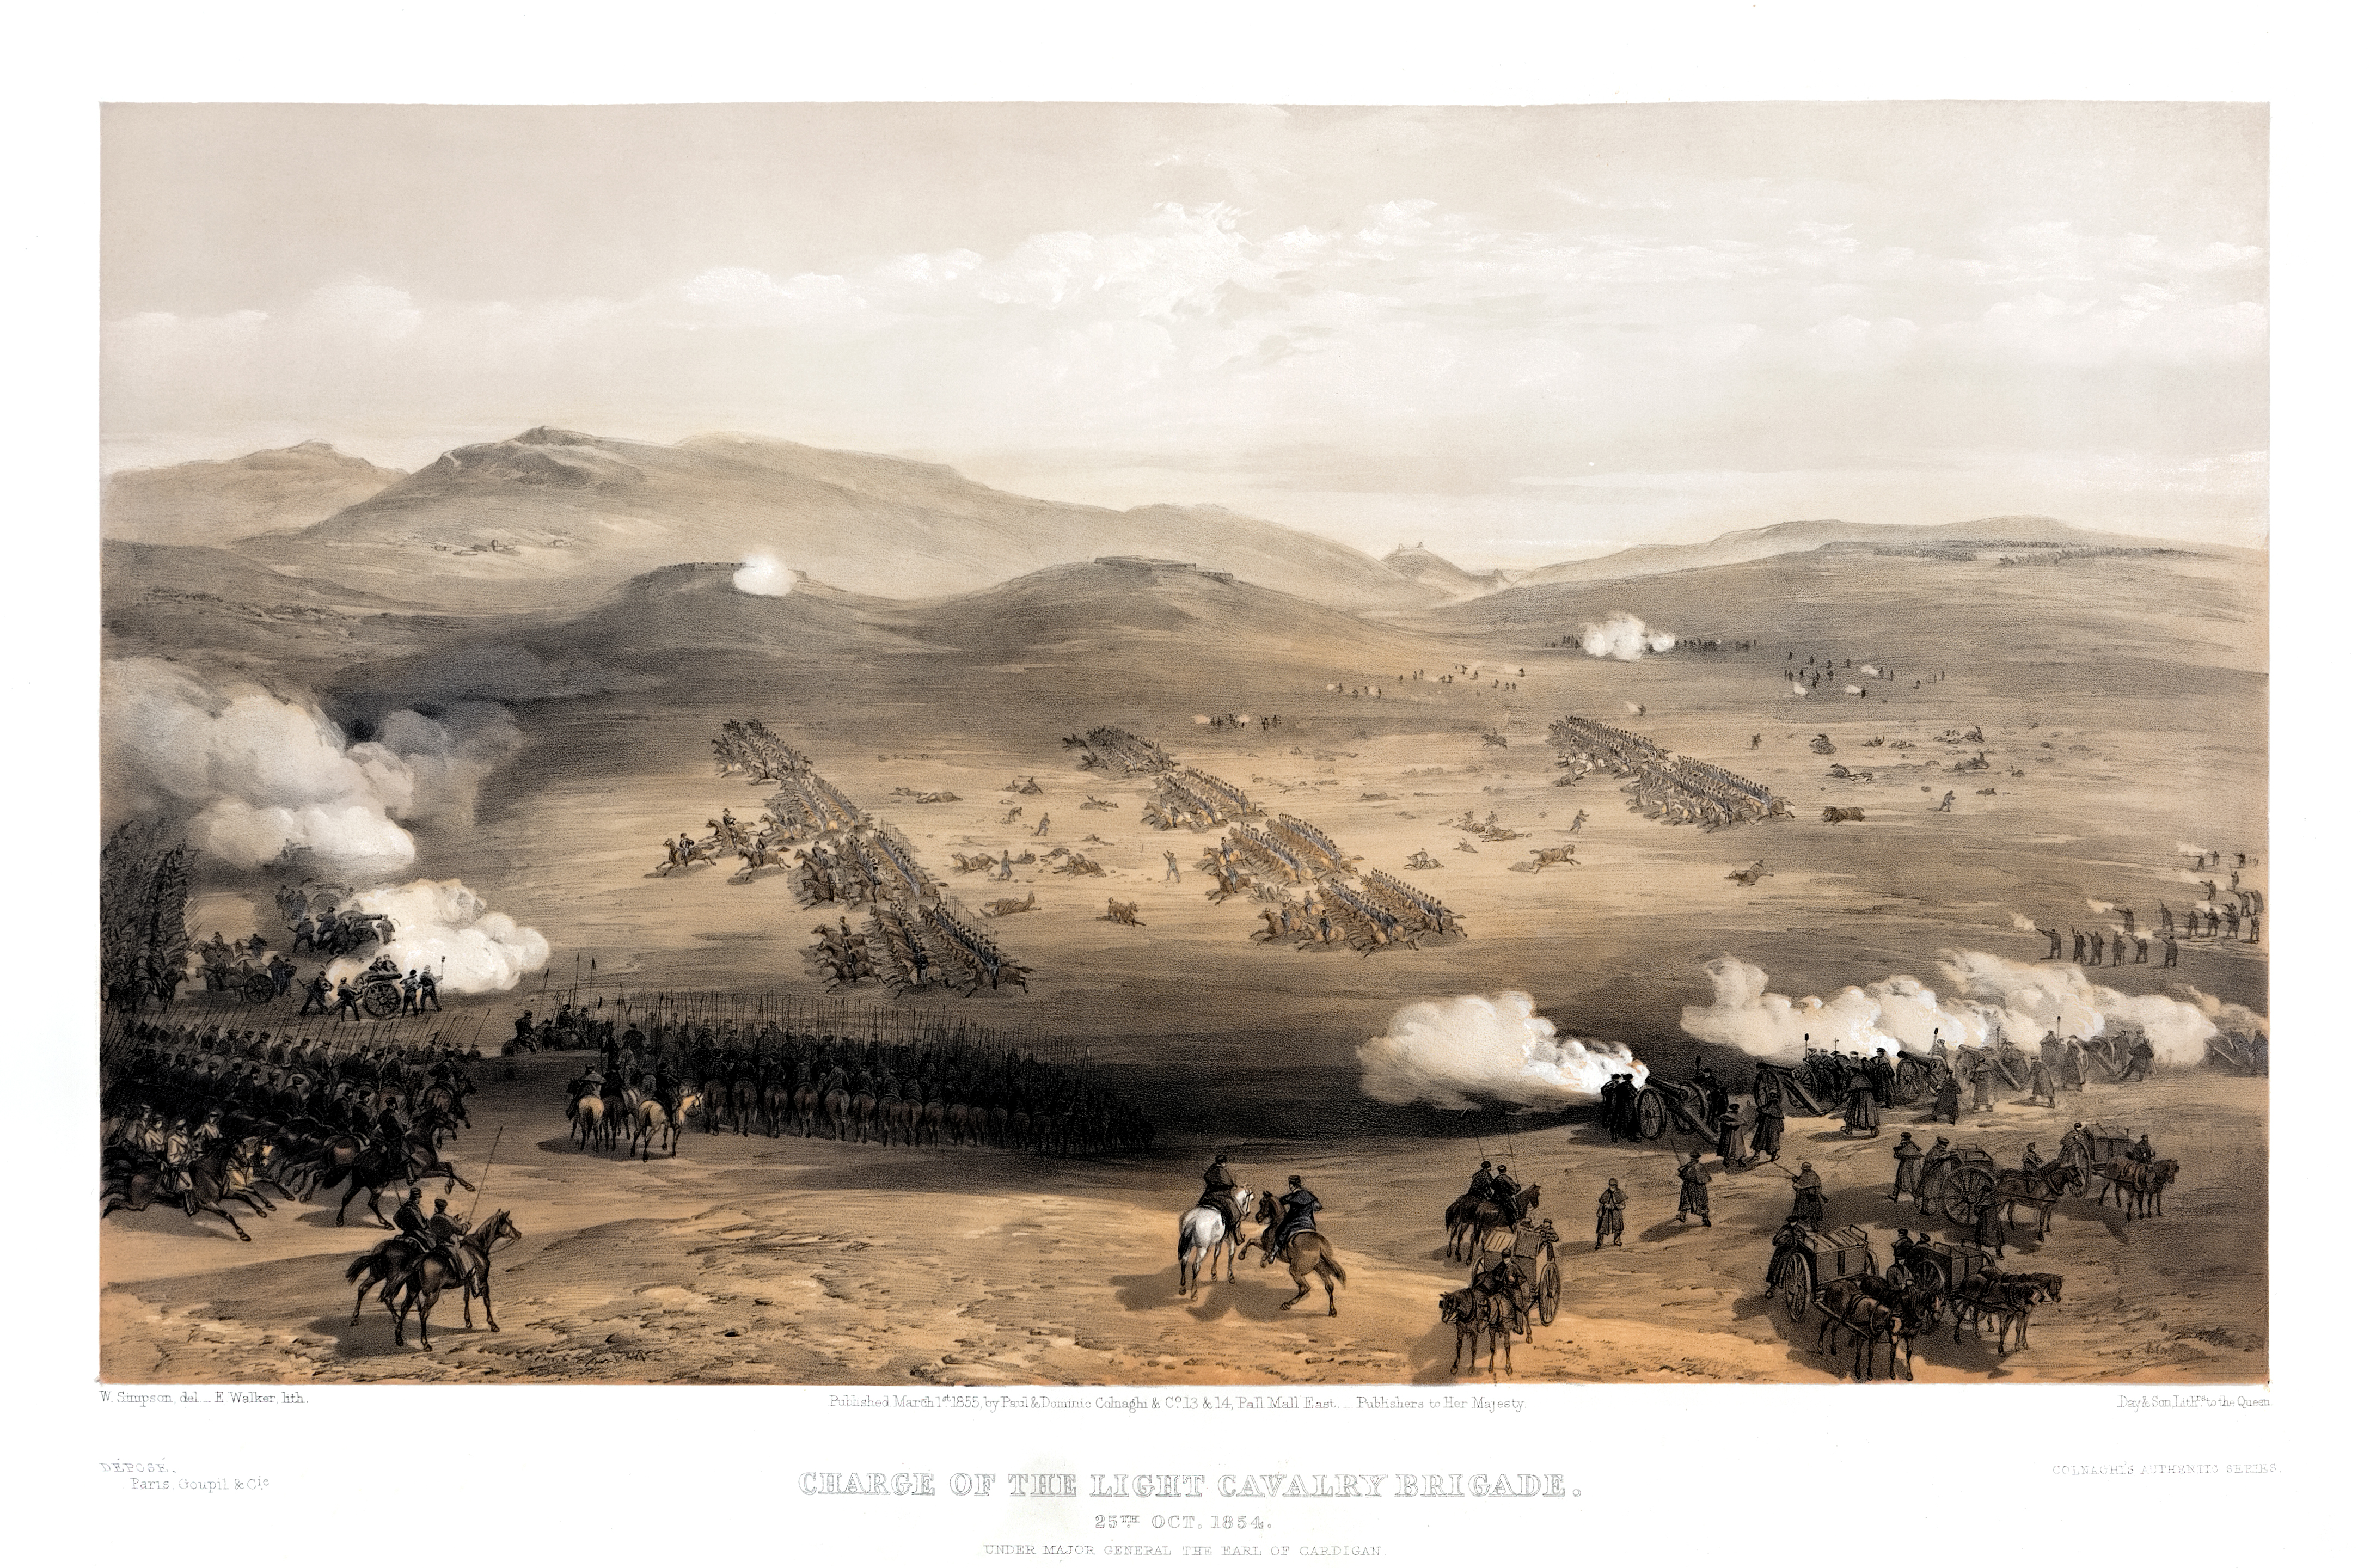 The Charge of the Light Brigade at Balaklava by William Simpson (1855)